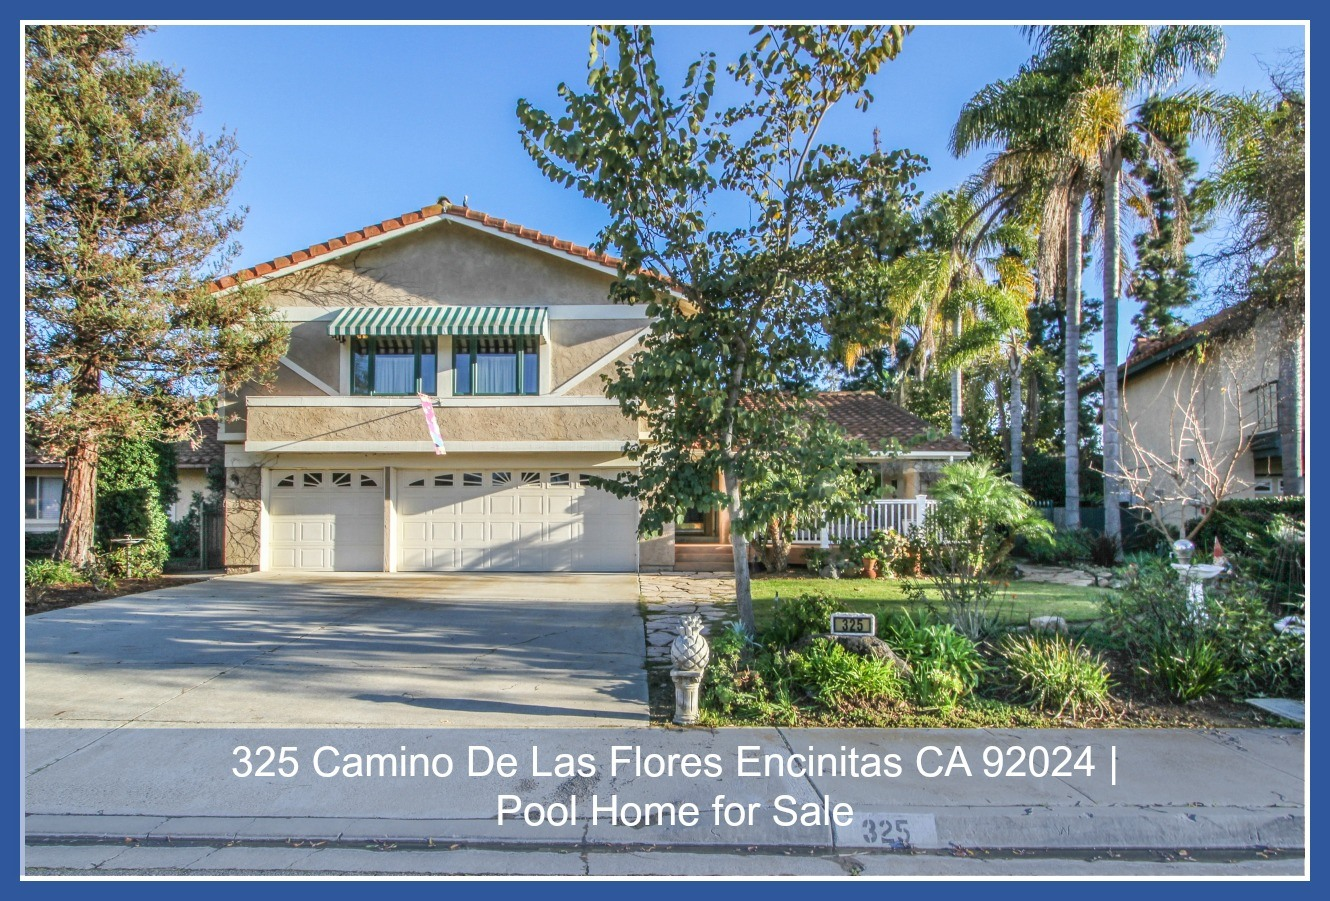 Homes in Encinitas - This home for sale in Encinitas is conveniently located close to everything - the beach, the golf course, the restaurants and shops and more.